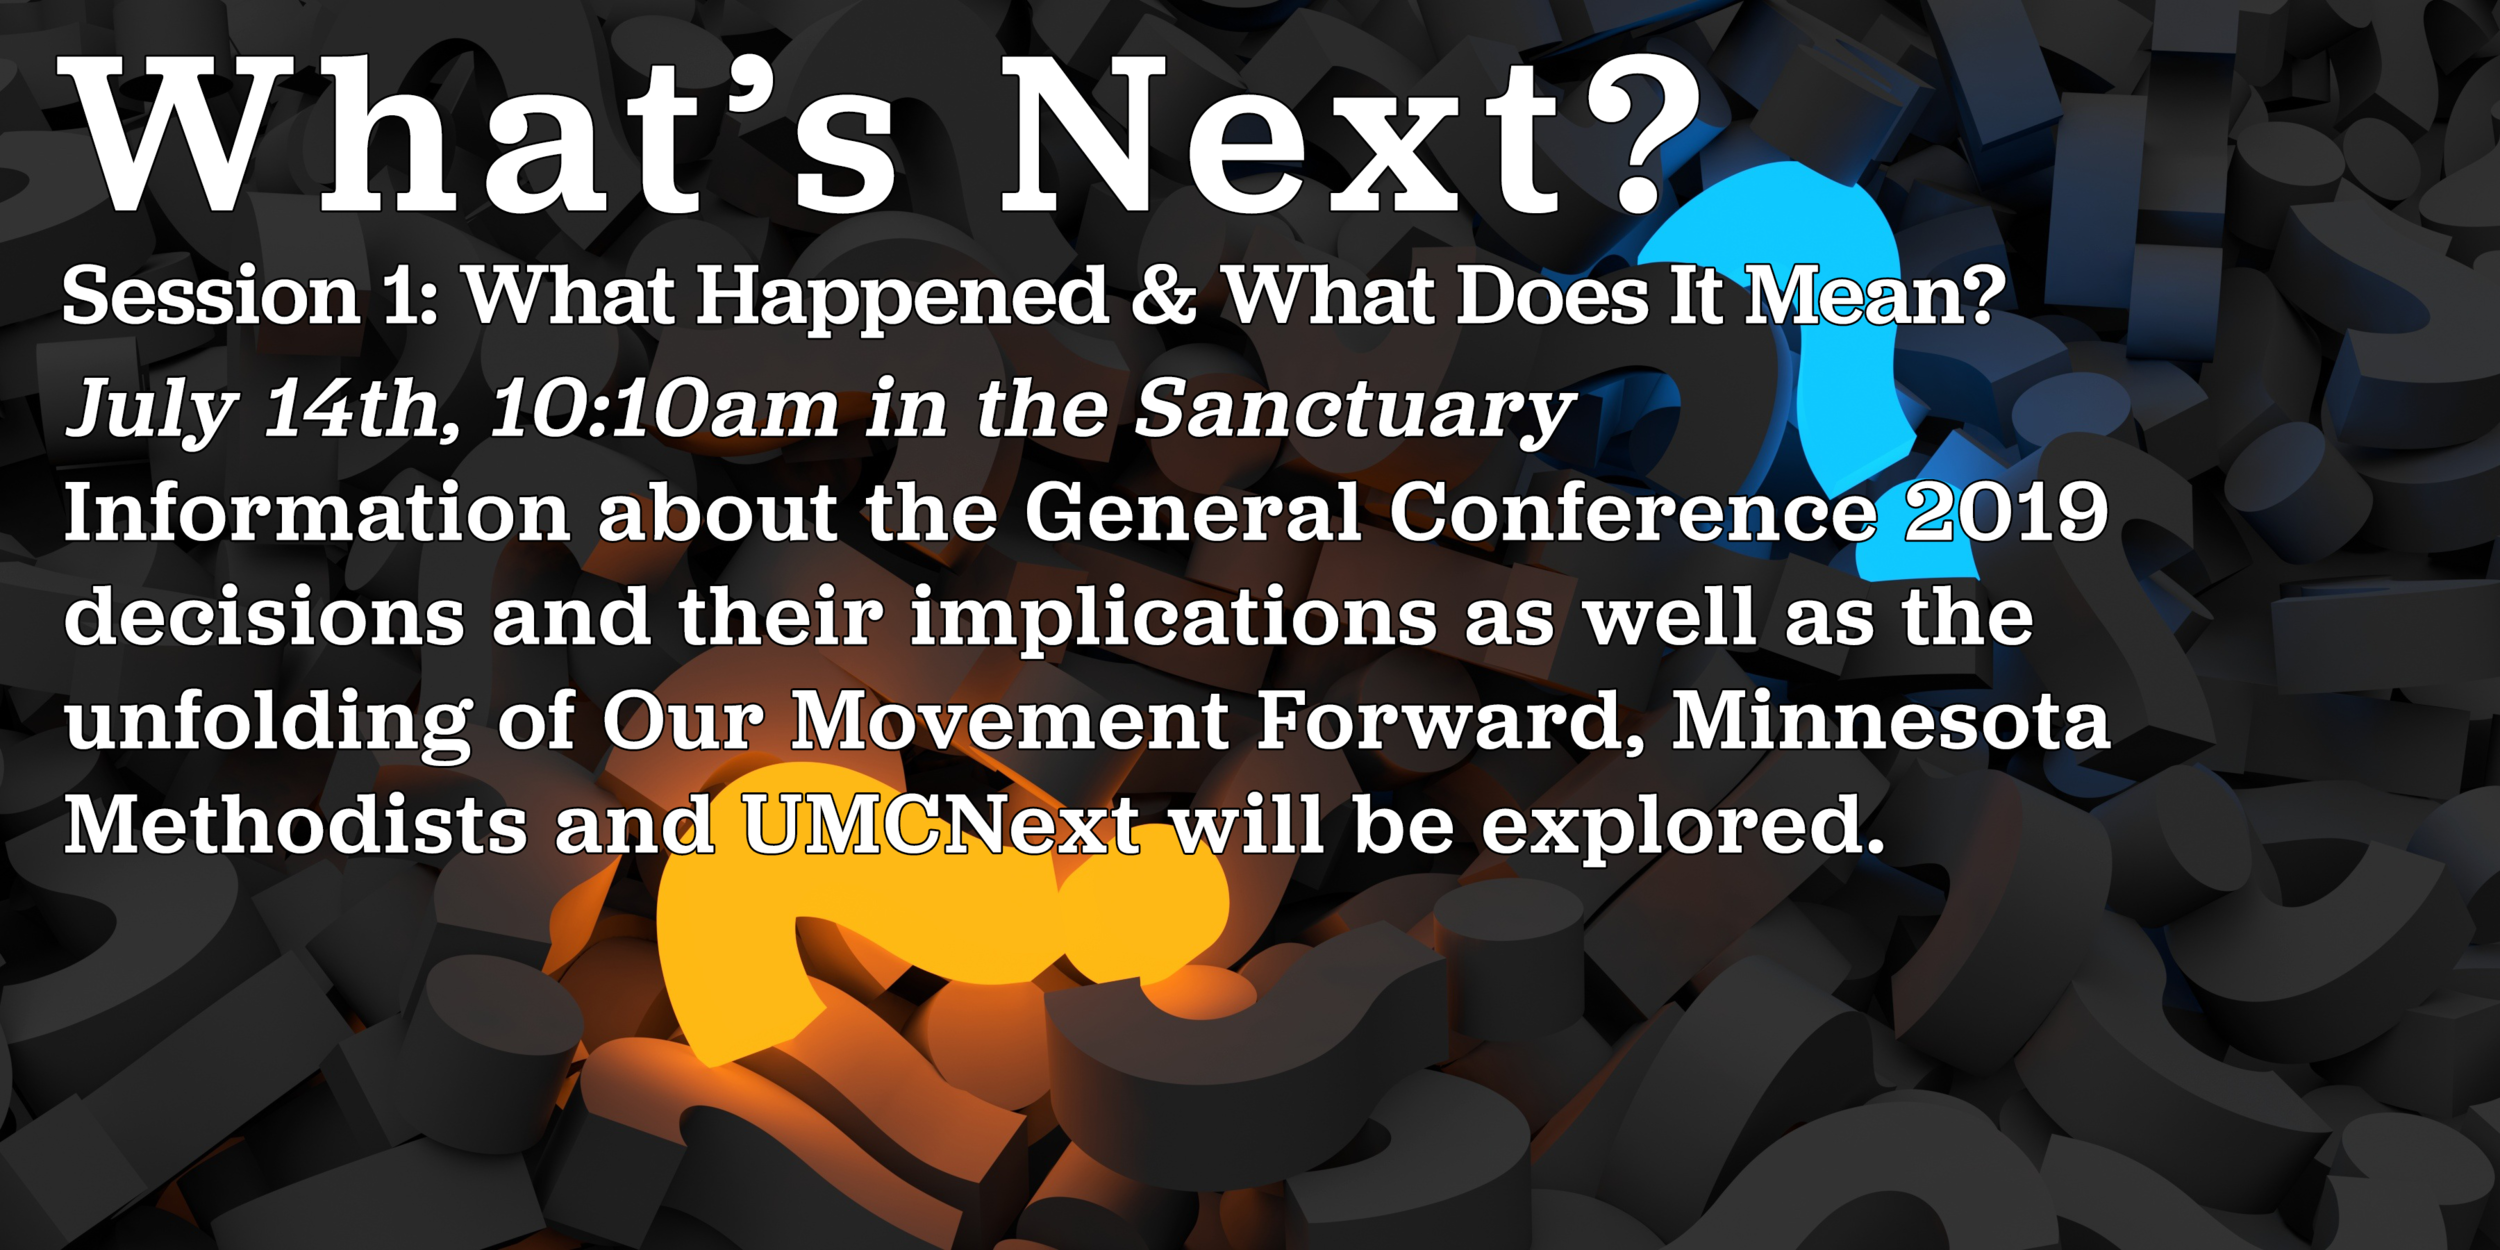 whats next -Session 1.png